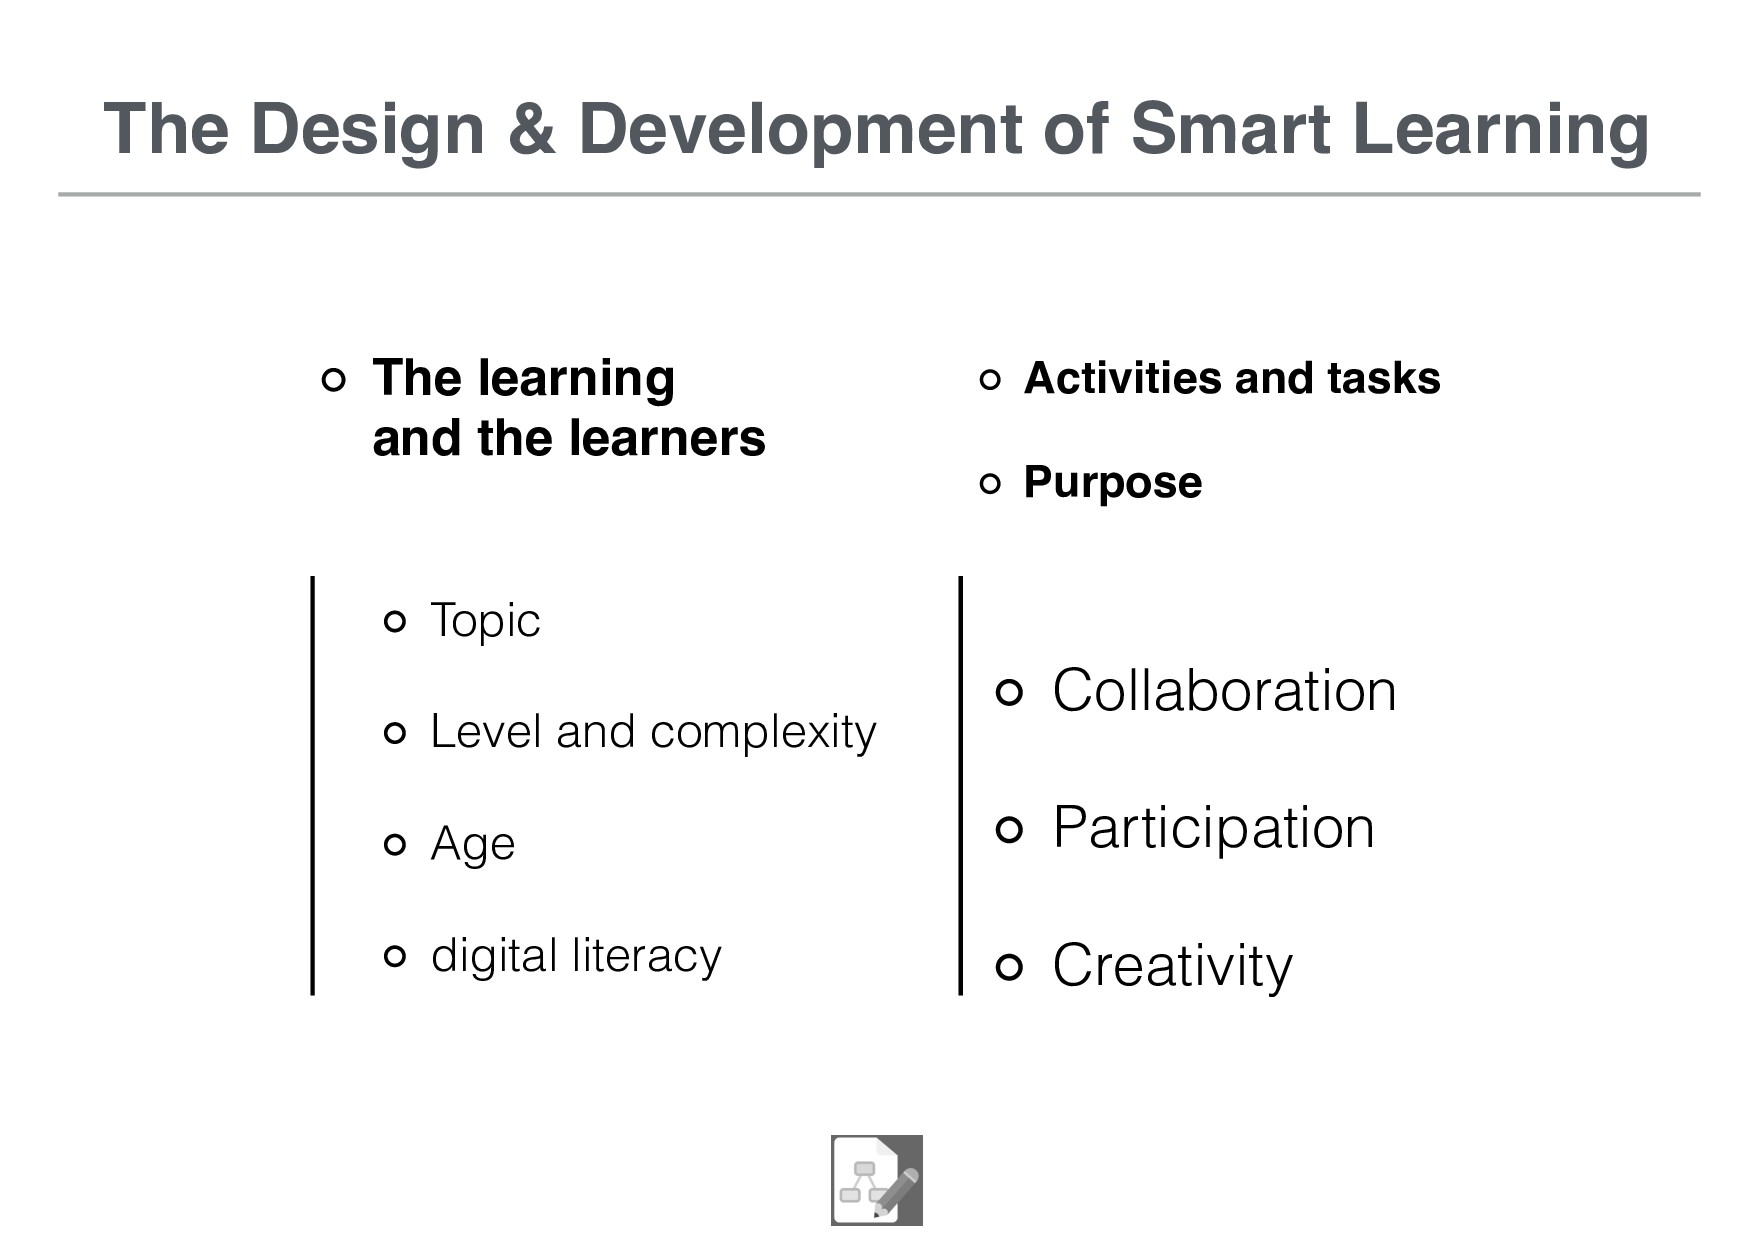 The Design & Development of Smart Learning Acti...